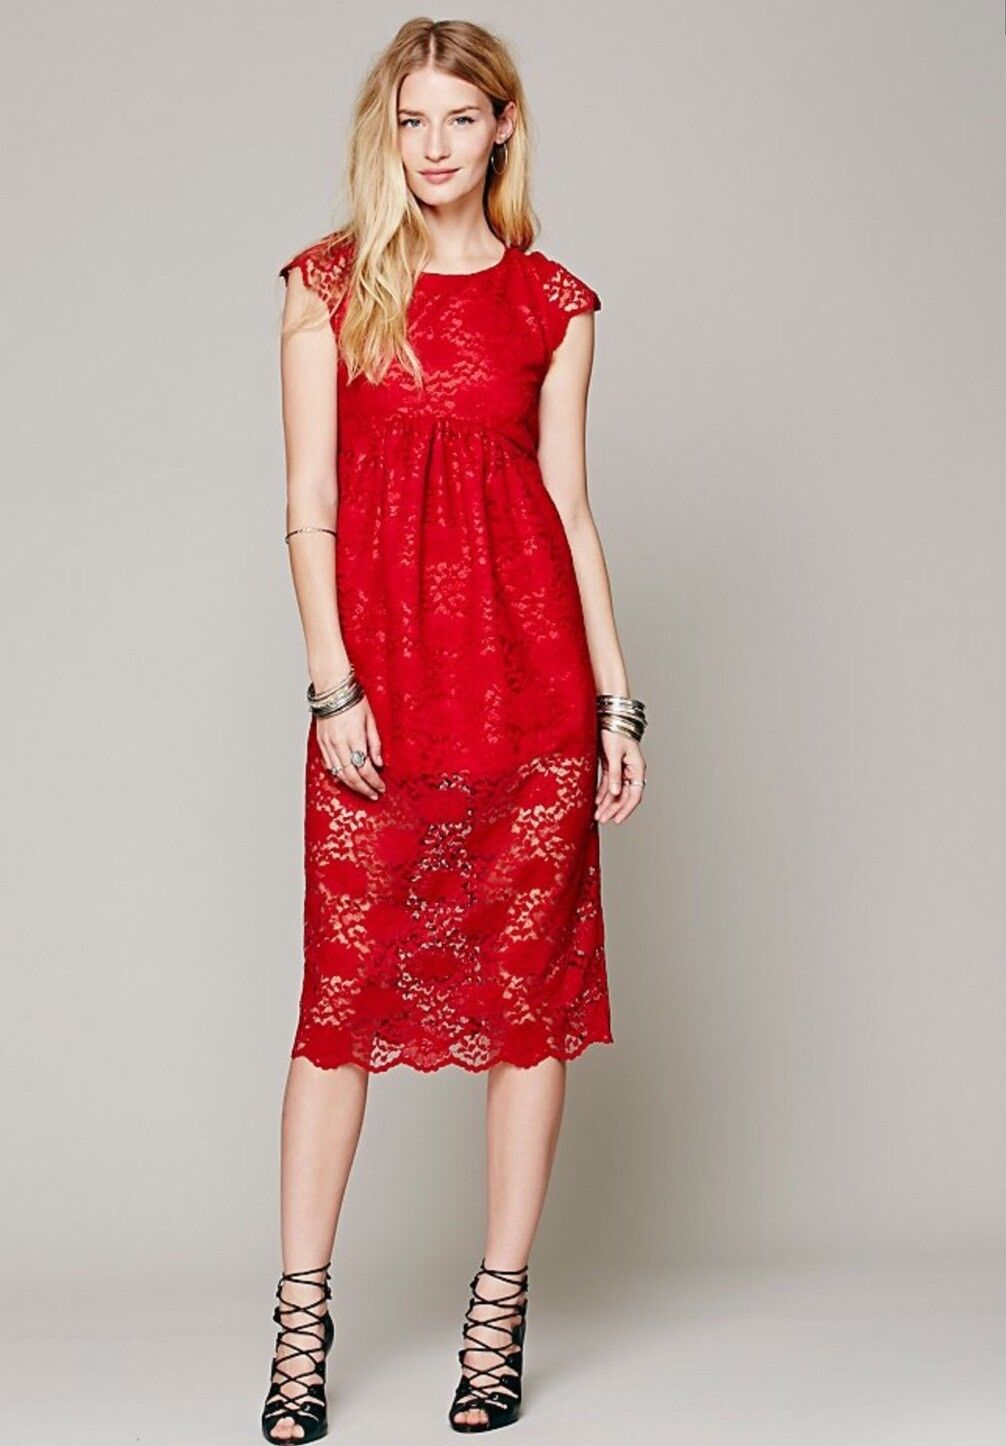 NEW Free People X Lindsey Thornburg Red Long Lace Babydoll Dress Size 4